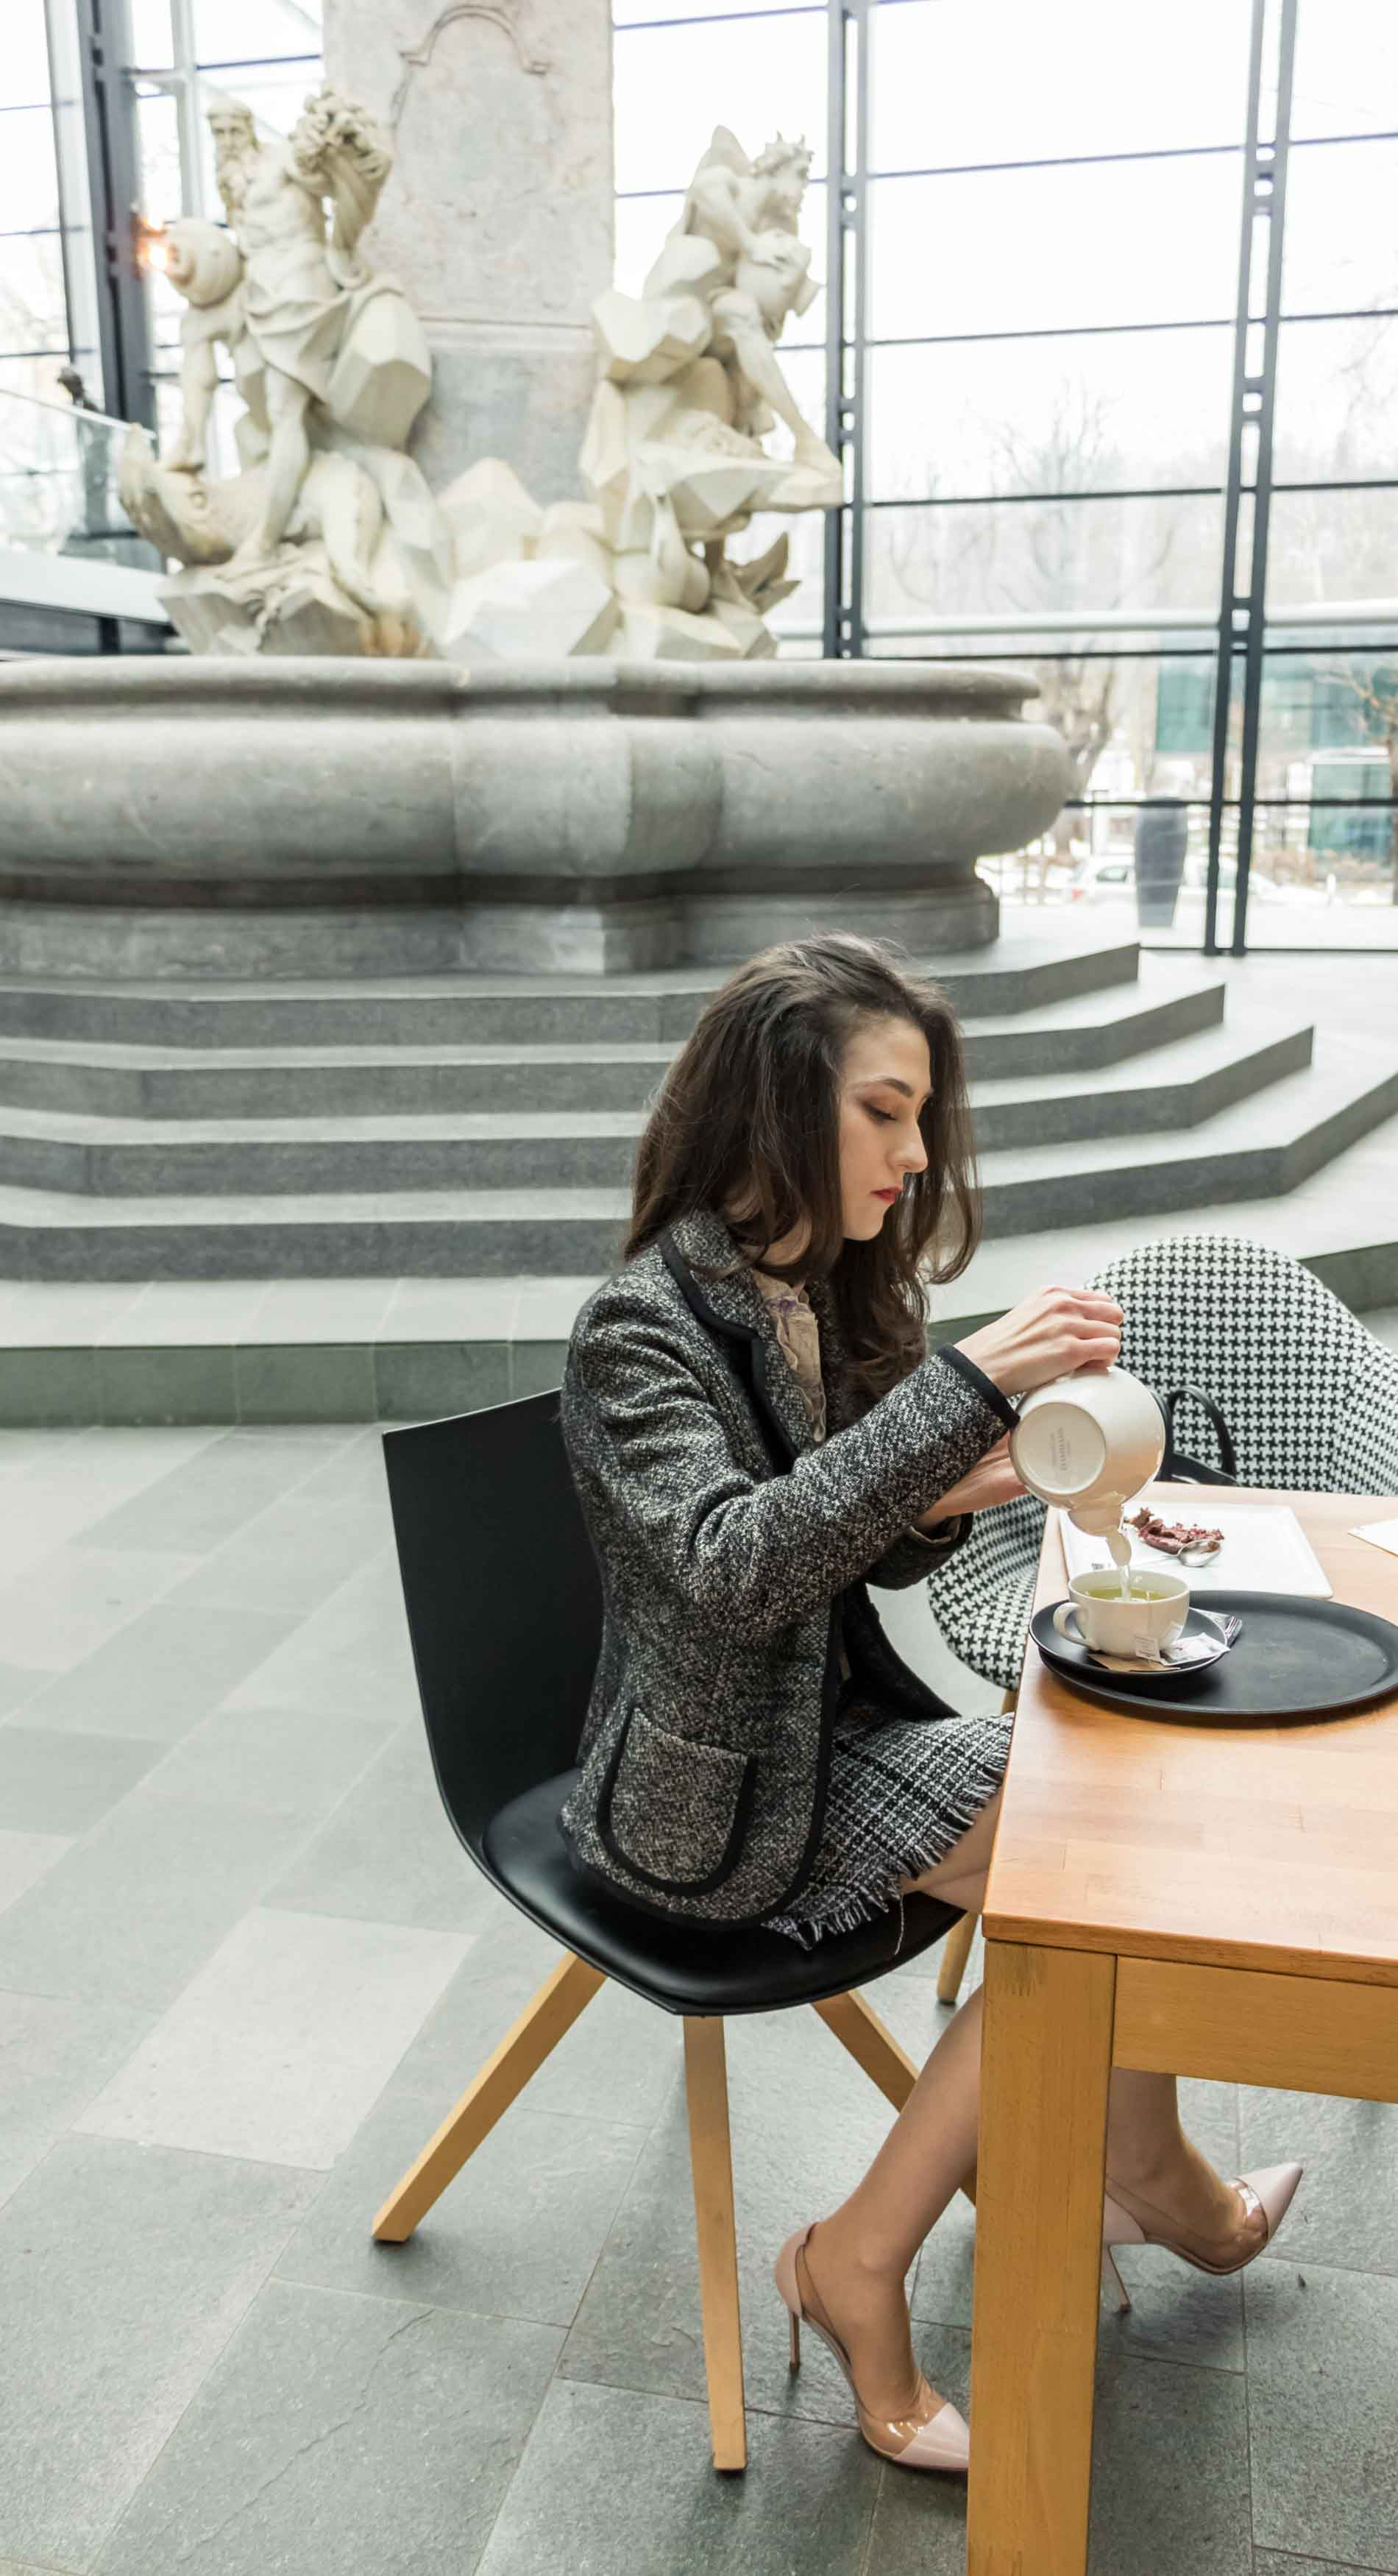 Fashion Blogger Veronika Lipar of Brunette from Wall Street dressed in tweed plaid mini skirt from Storets, black and white Marella tweed jacket, blush Gianvito Rossi Plexi 100 leather and PVC pumps, while pouring a tea